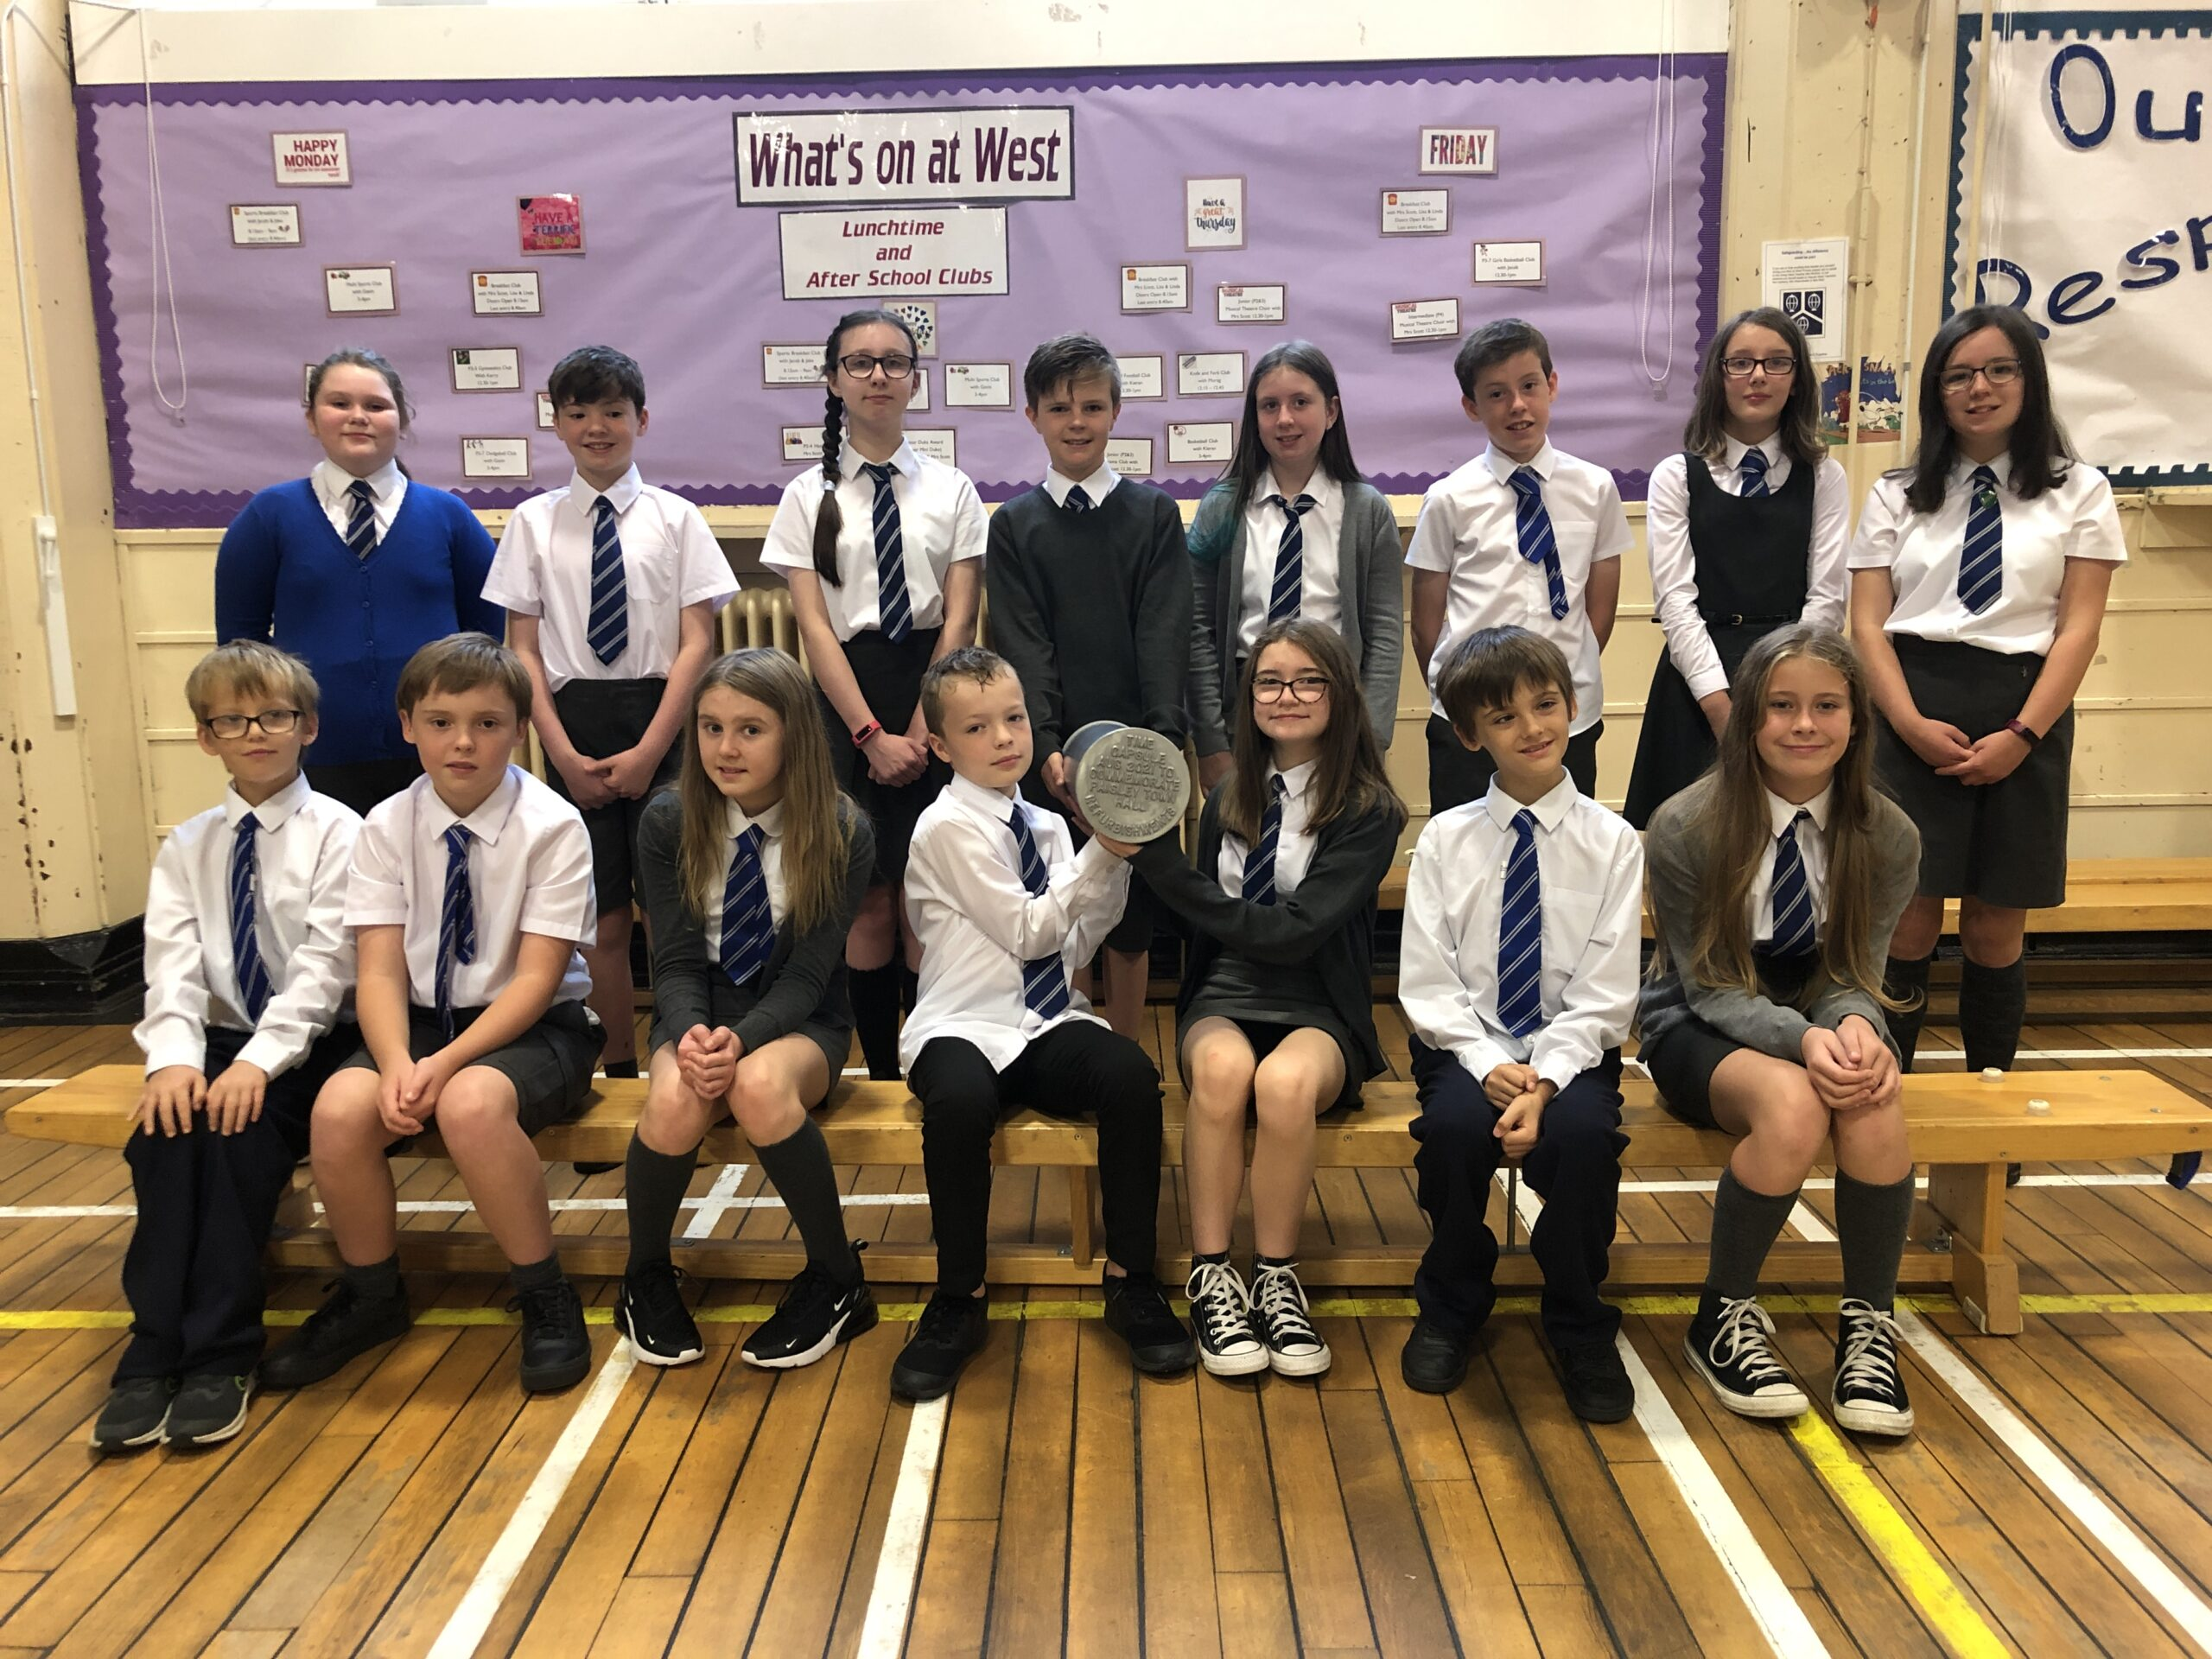 Primary 7 pupils from West Primary School with the time capsule